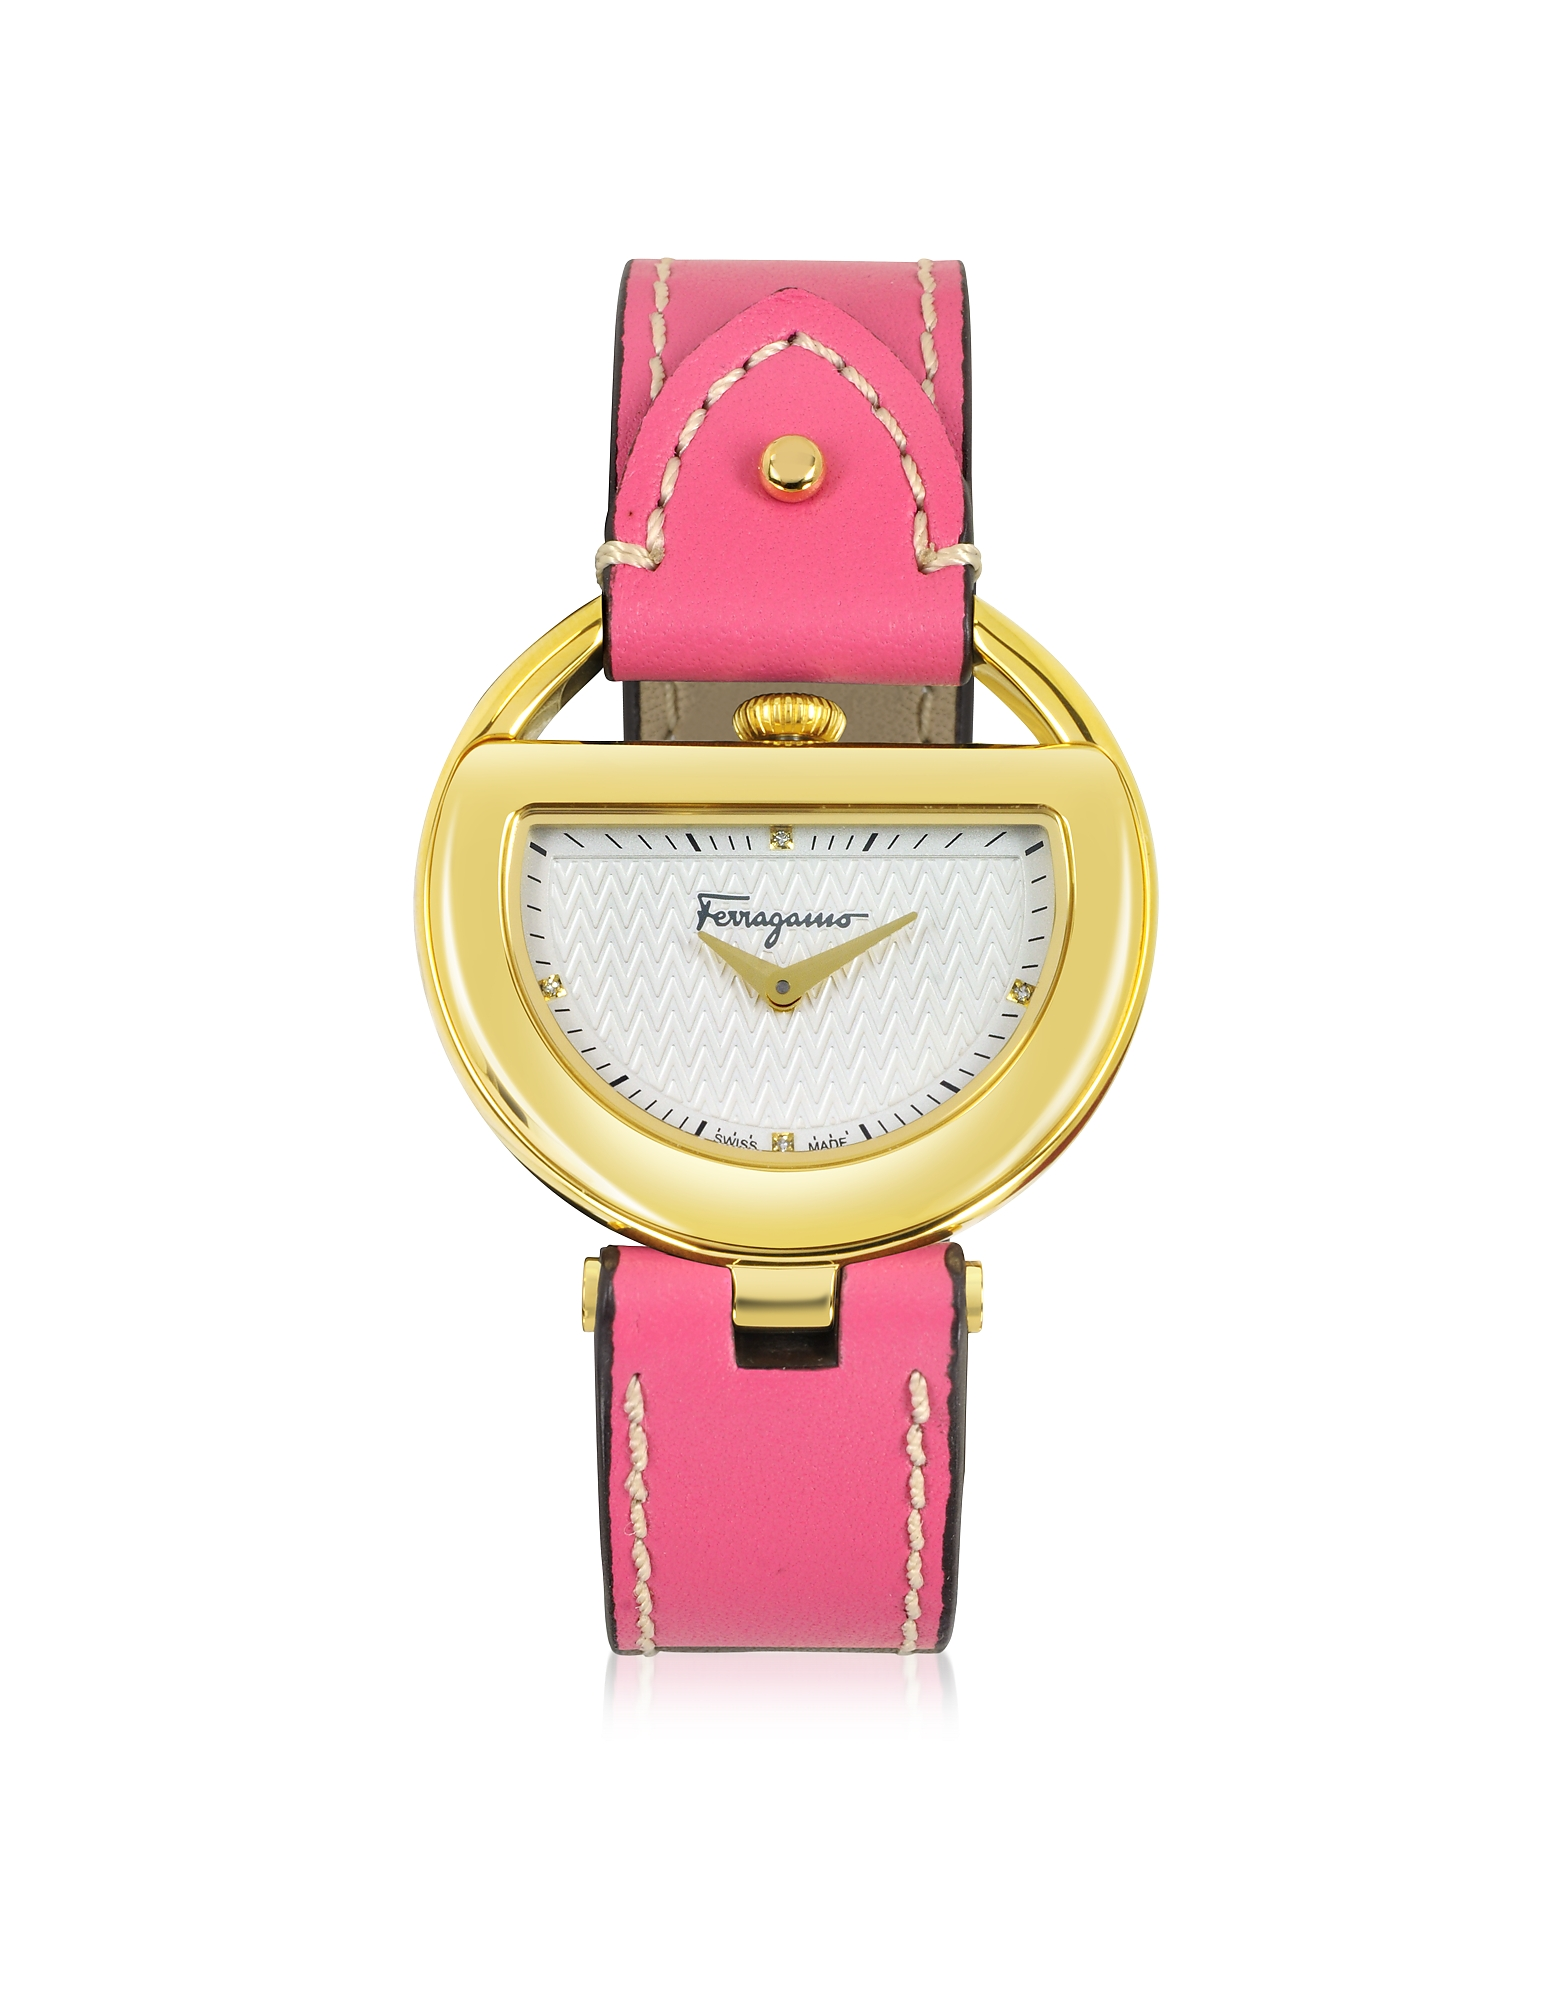 Salvatore Ferragamo  Women's Watches Buckle Collection Gold IP Stainless Steel Case and Fuchsia Leather Strap Women's Watch